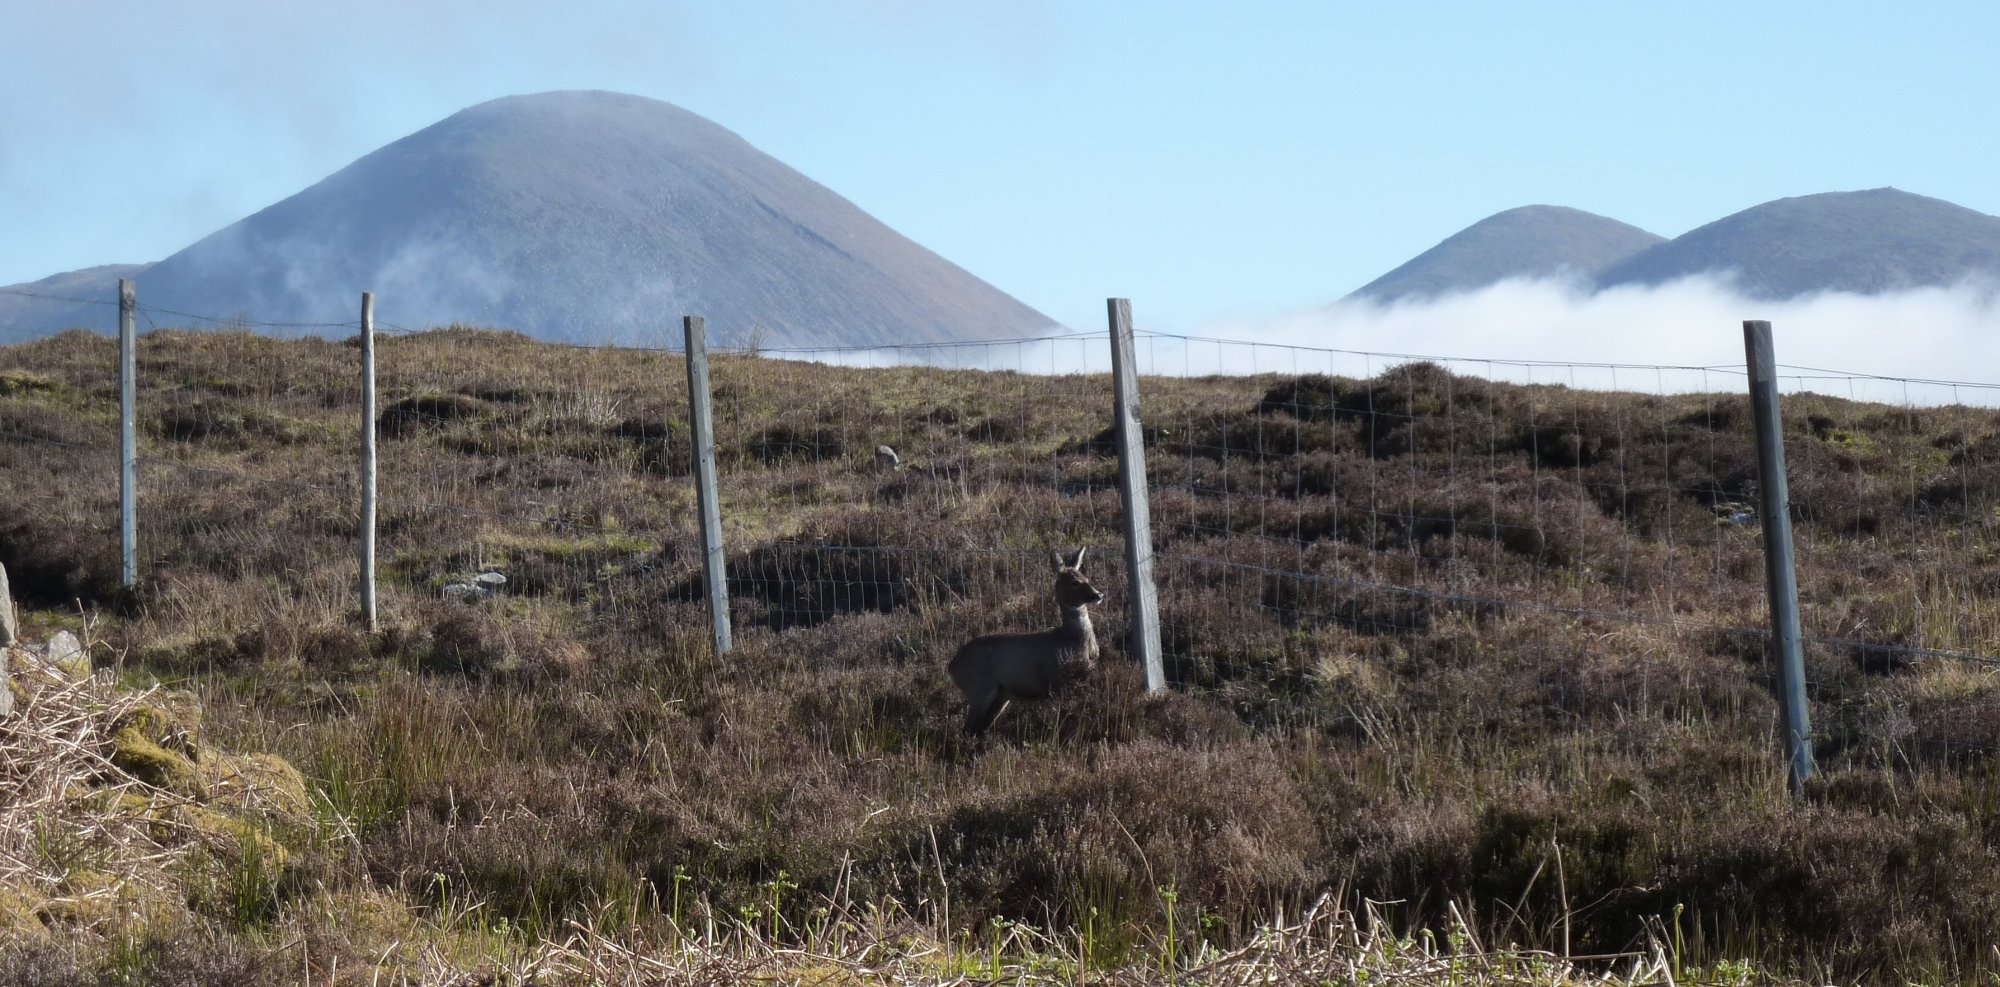 The second deer wasn't quite as agile as his mate, didn't manage to jump the fence and got in a right tizzy